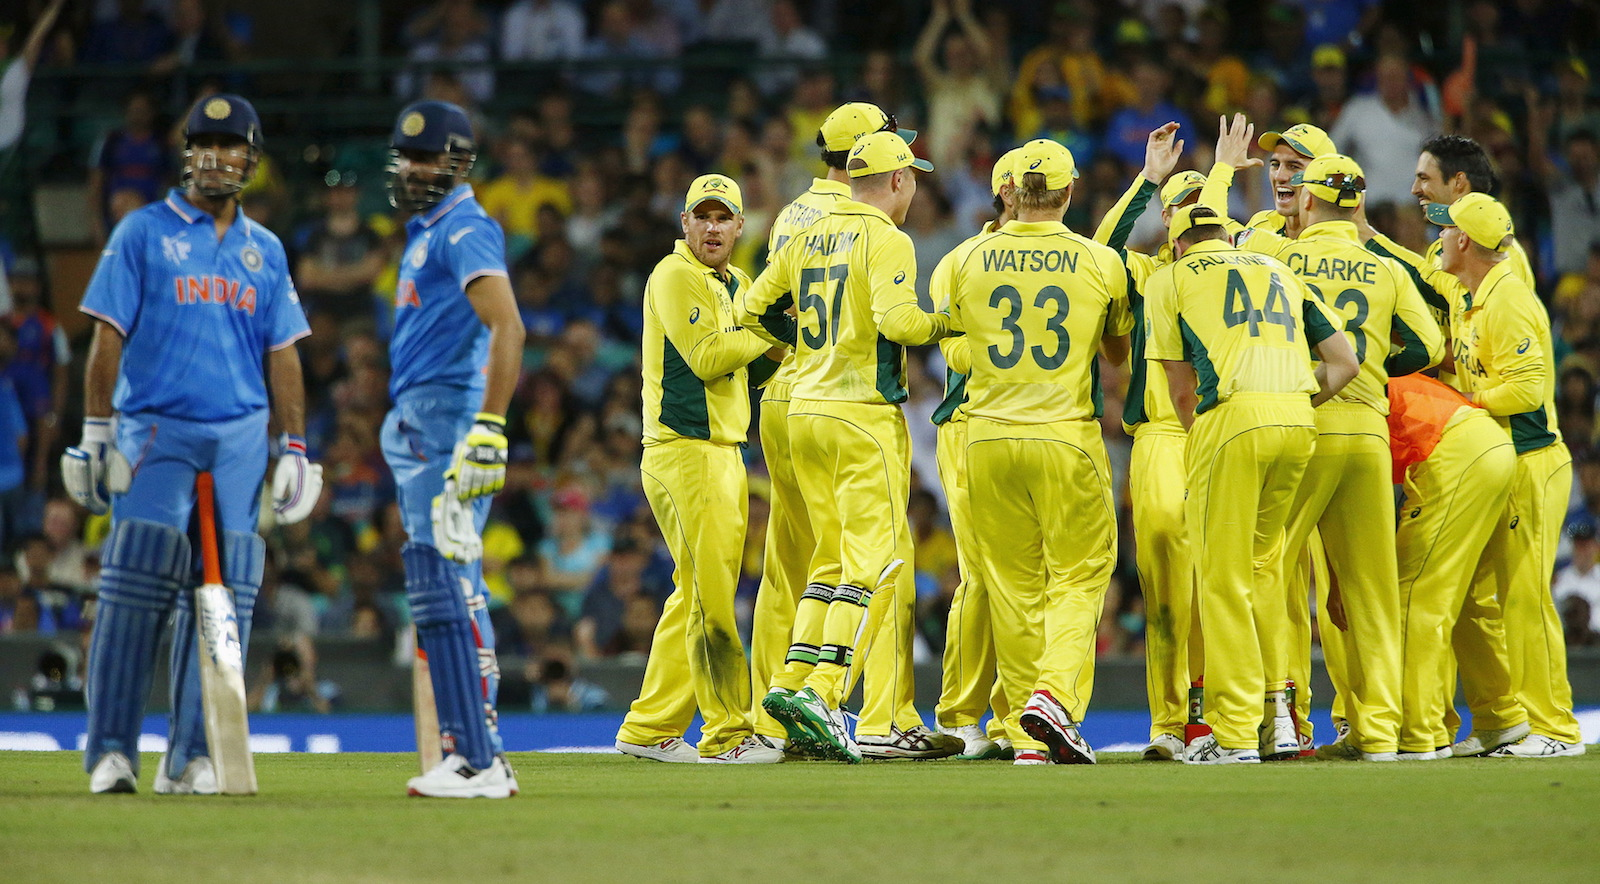 Australian team mates react after an official replay showed that India's Ravindra Jadeja (2nd L) was run out by Steve Smith during their Cricket World Cup semi-final match in Sydney, March 26, 2015.